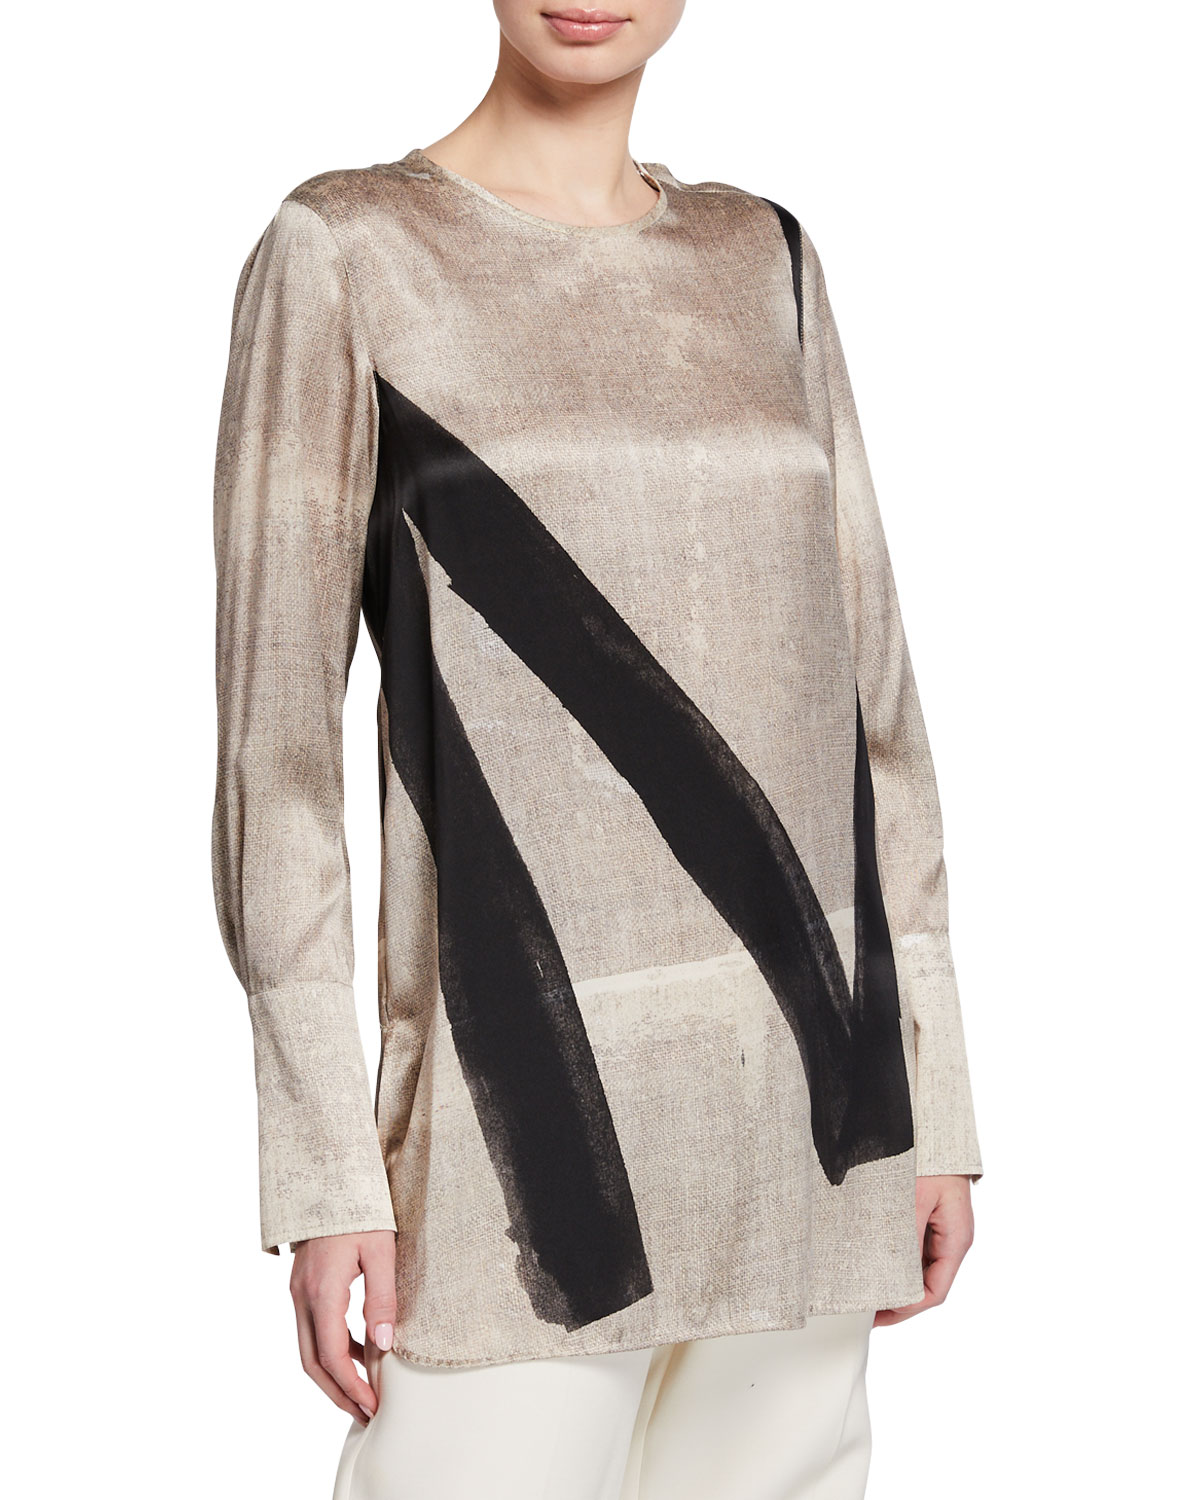 Max Mara Tops ATTORE PAINTED SILK TUNIC BLOUSE